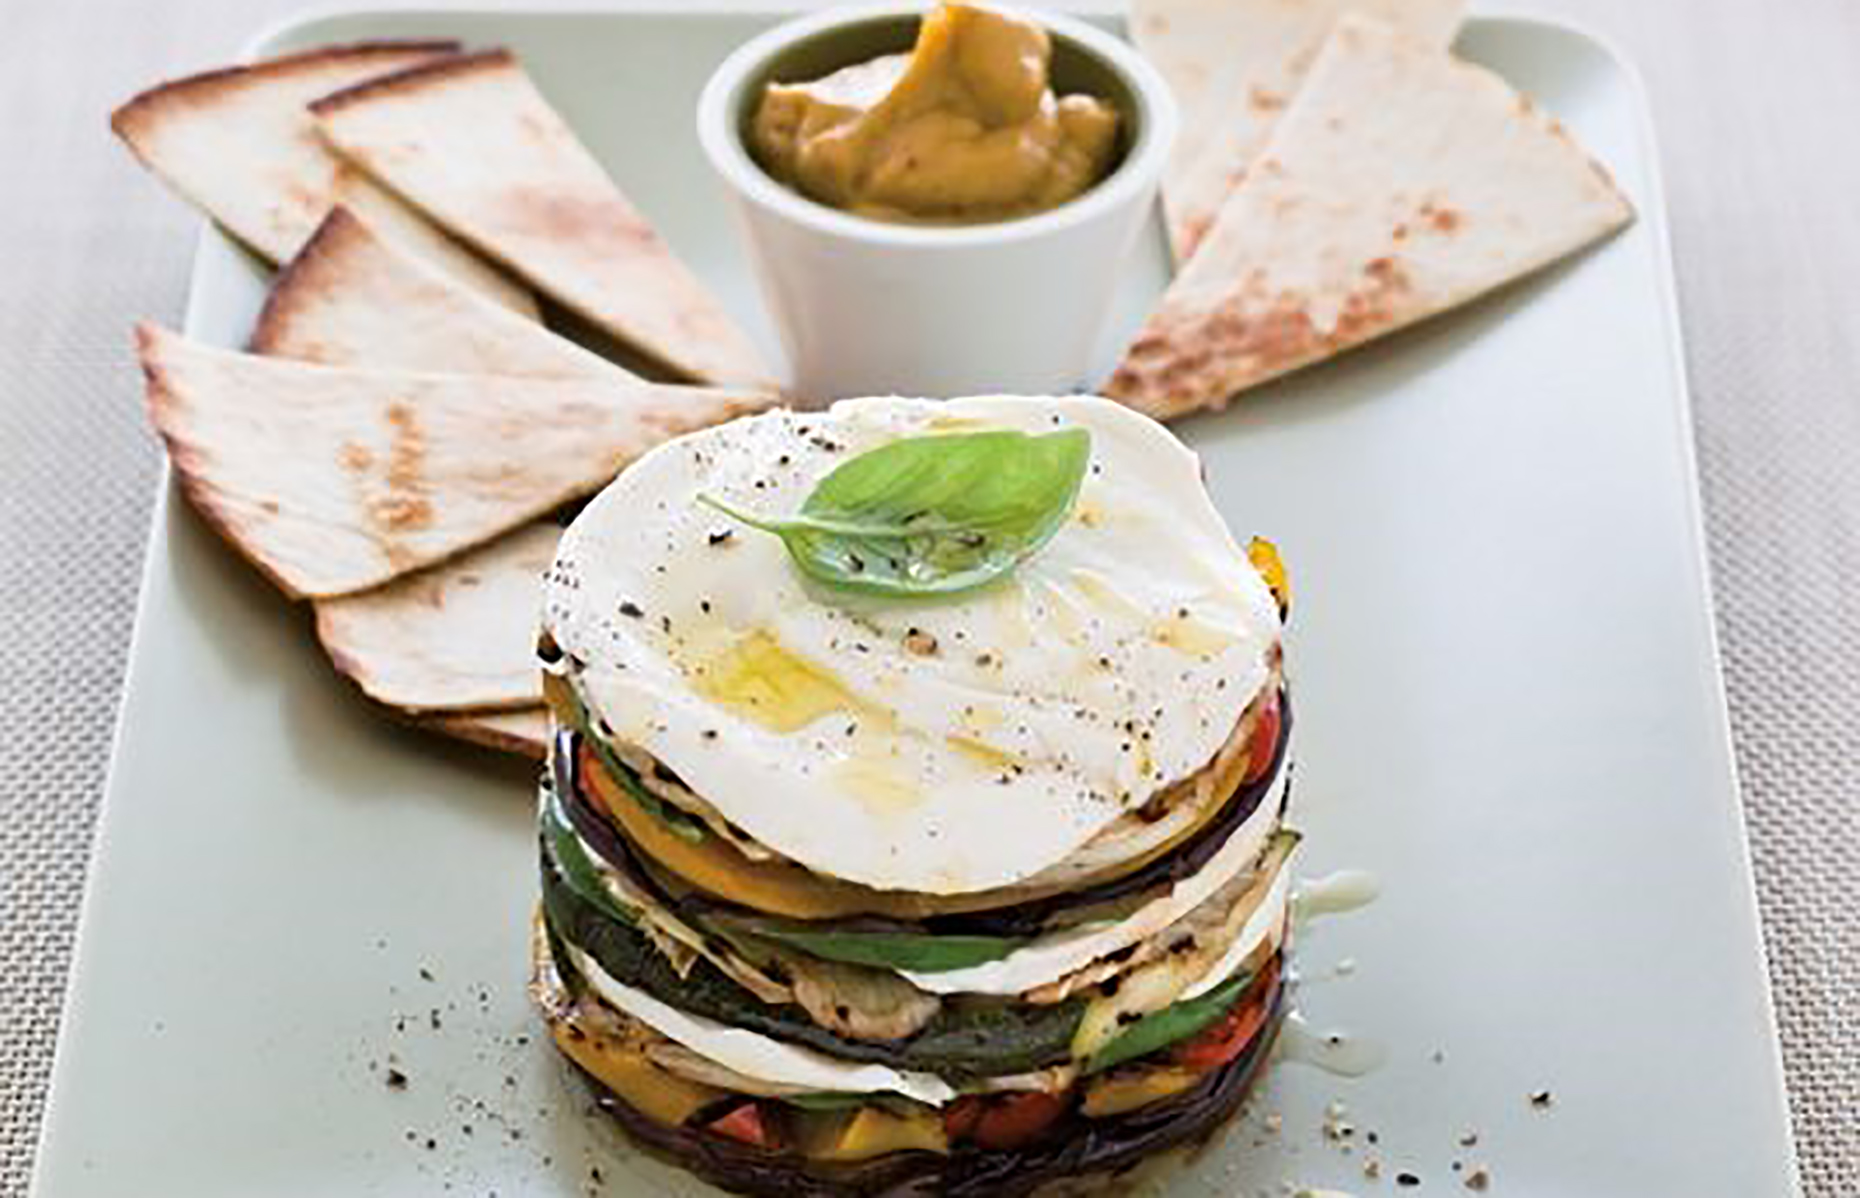 A stack of grilled vegetables and mozzarella (Image: Nicola Graimes/loveFOOD)